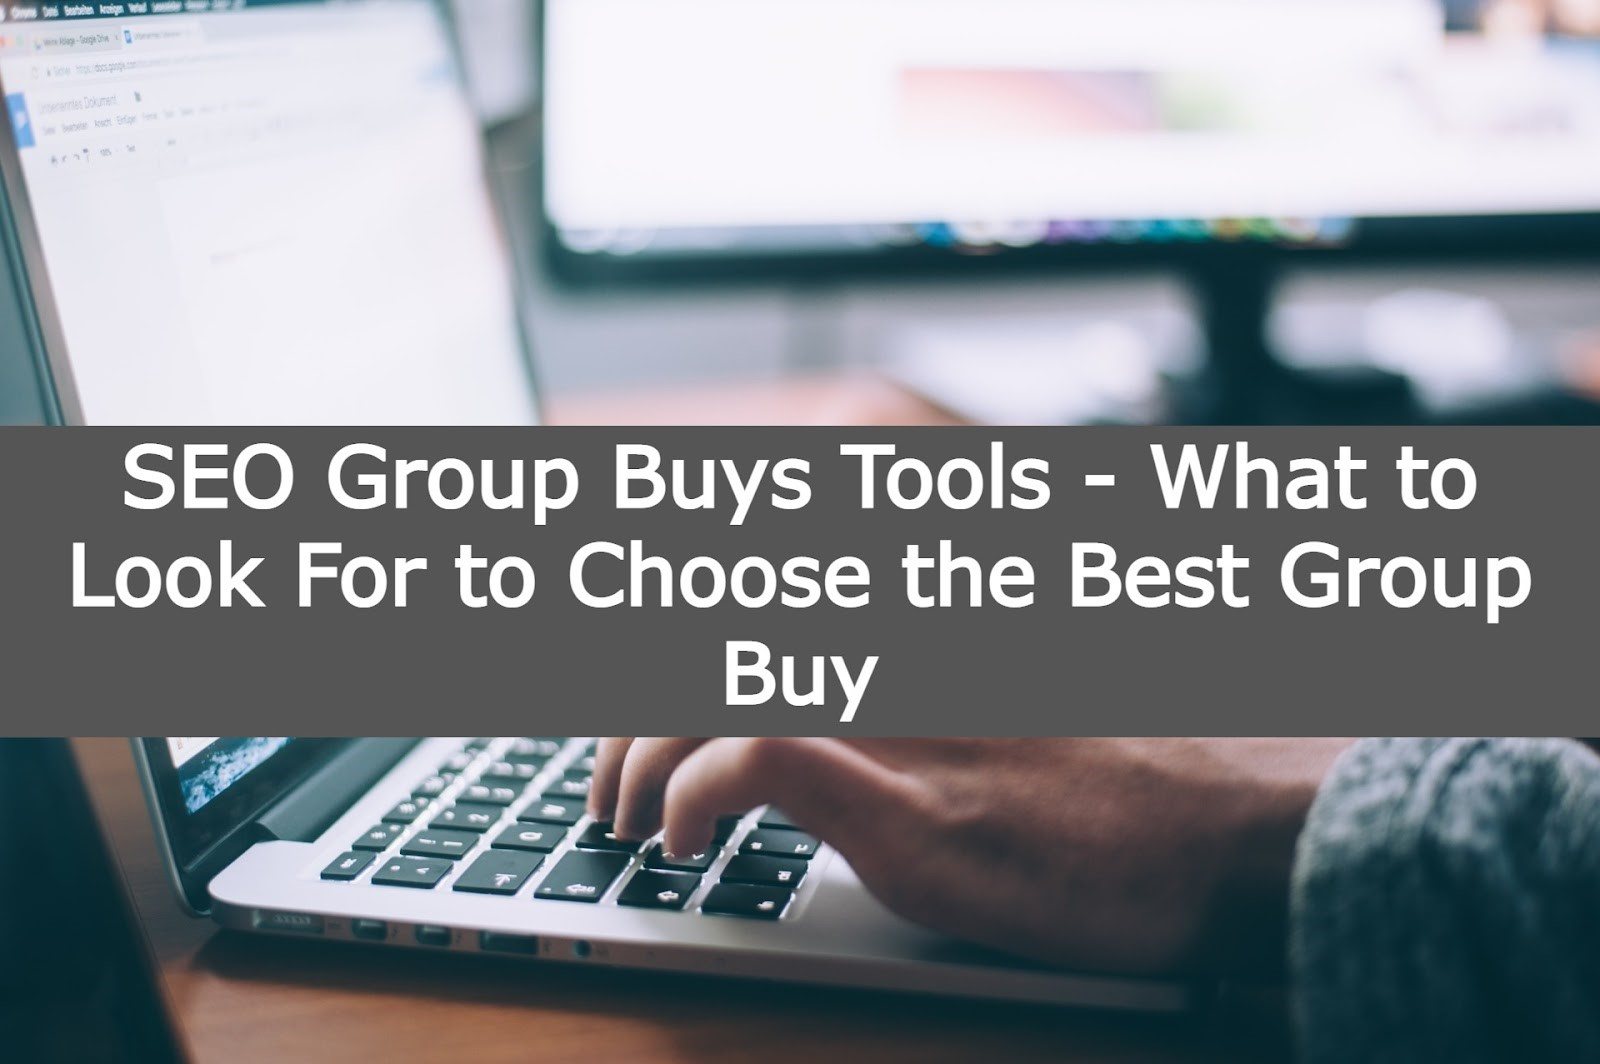 SEO Group Buys Tools – What to Look For to Choose the Best Group Buy